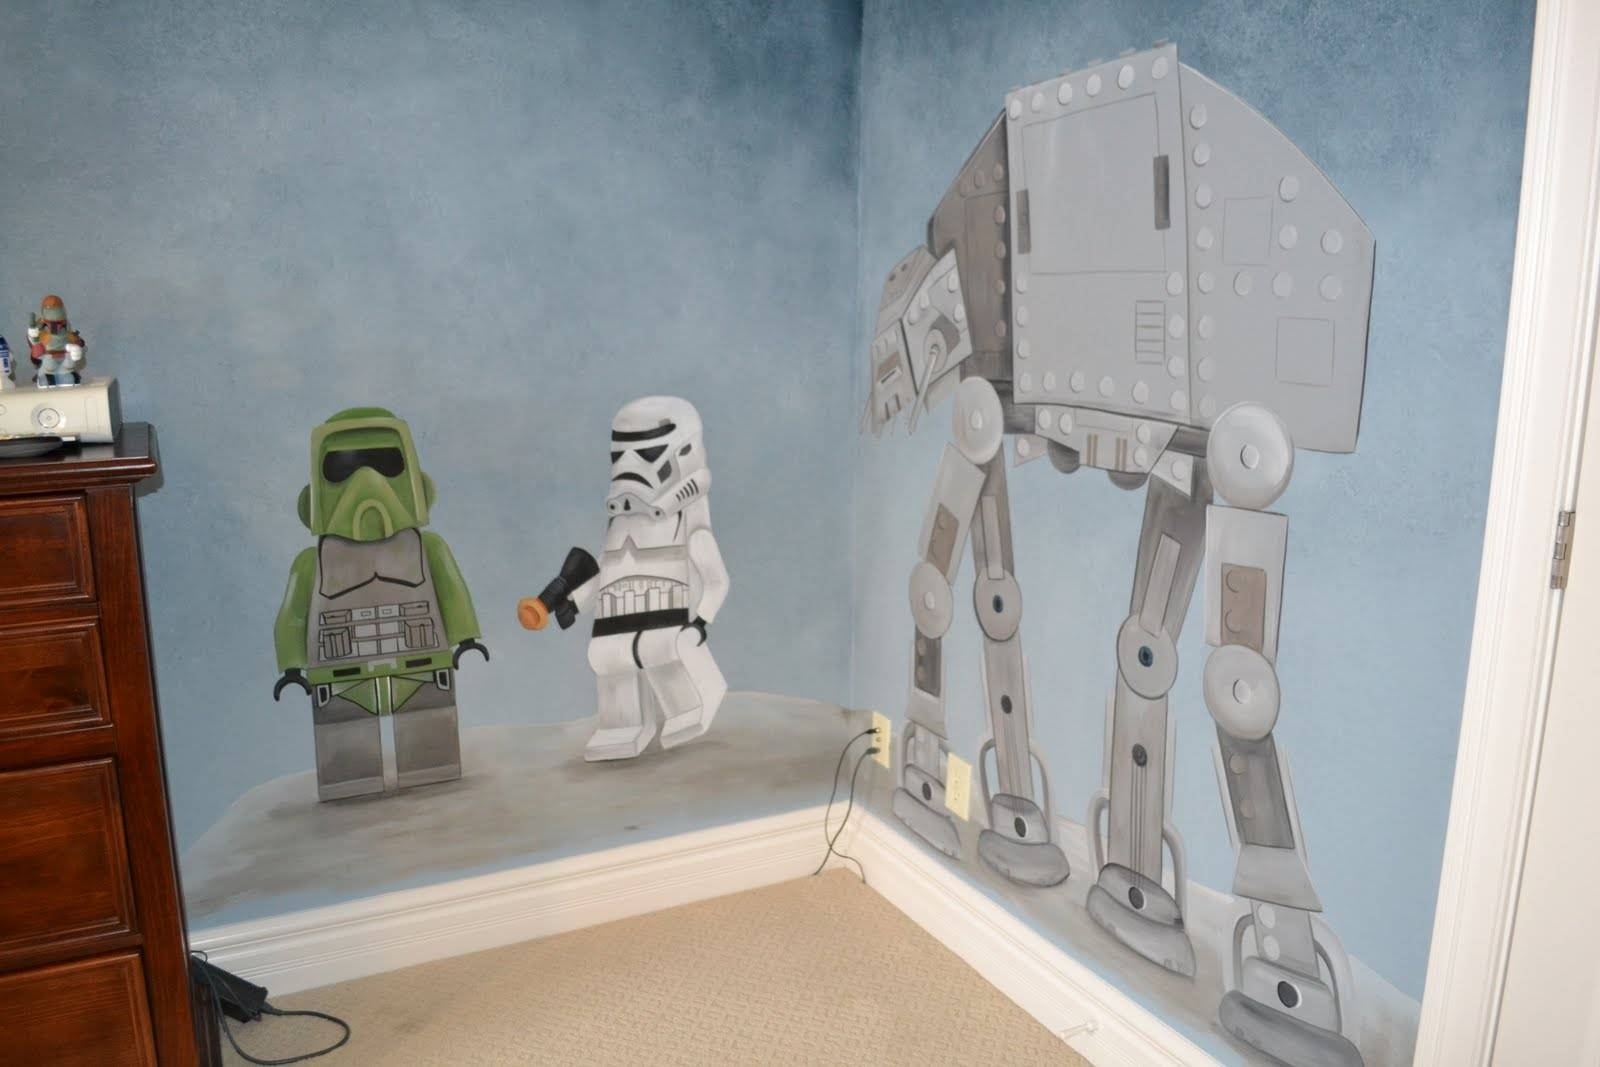 You're Artcorie Kline: Star Wars Mural With Regard To Most Up To Date Lego Star Wars Wall Art (Gallery 14 of 20)